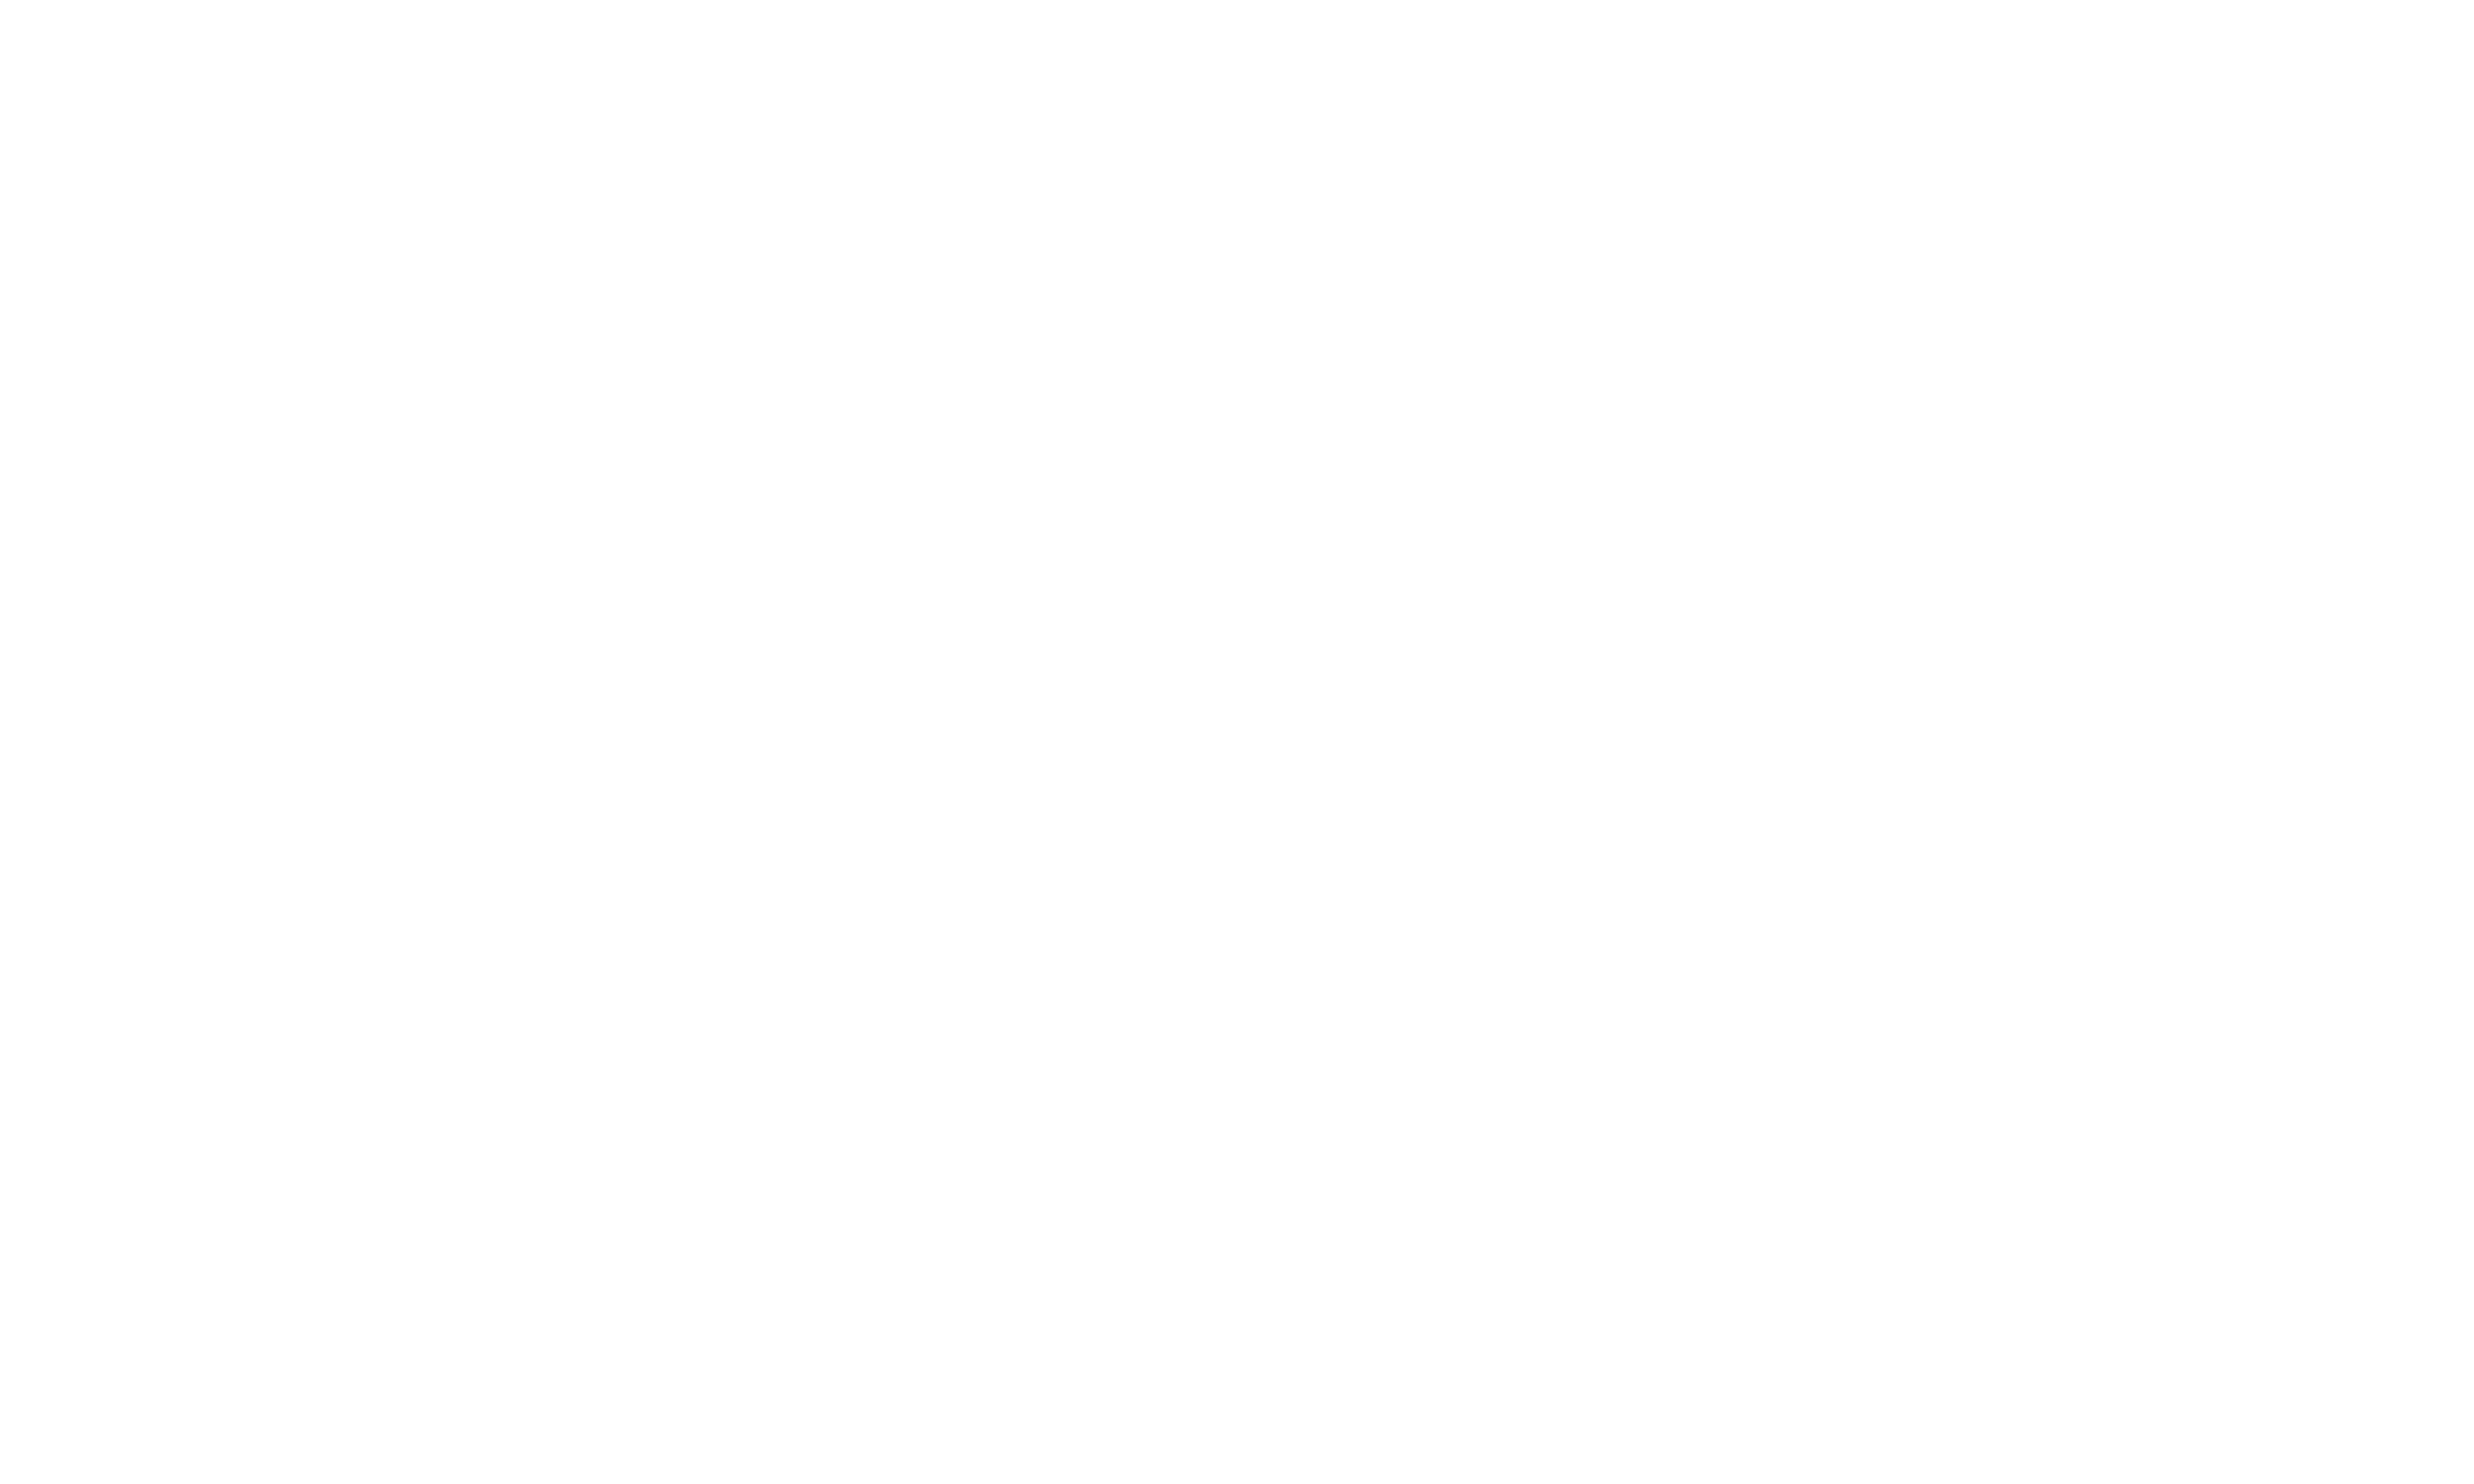 One Warm Act